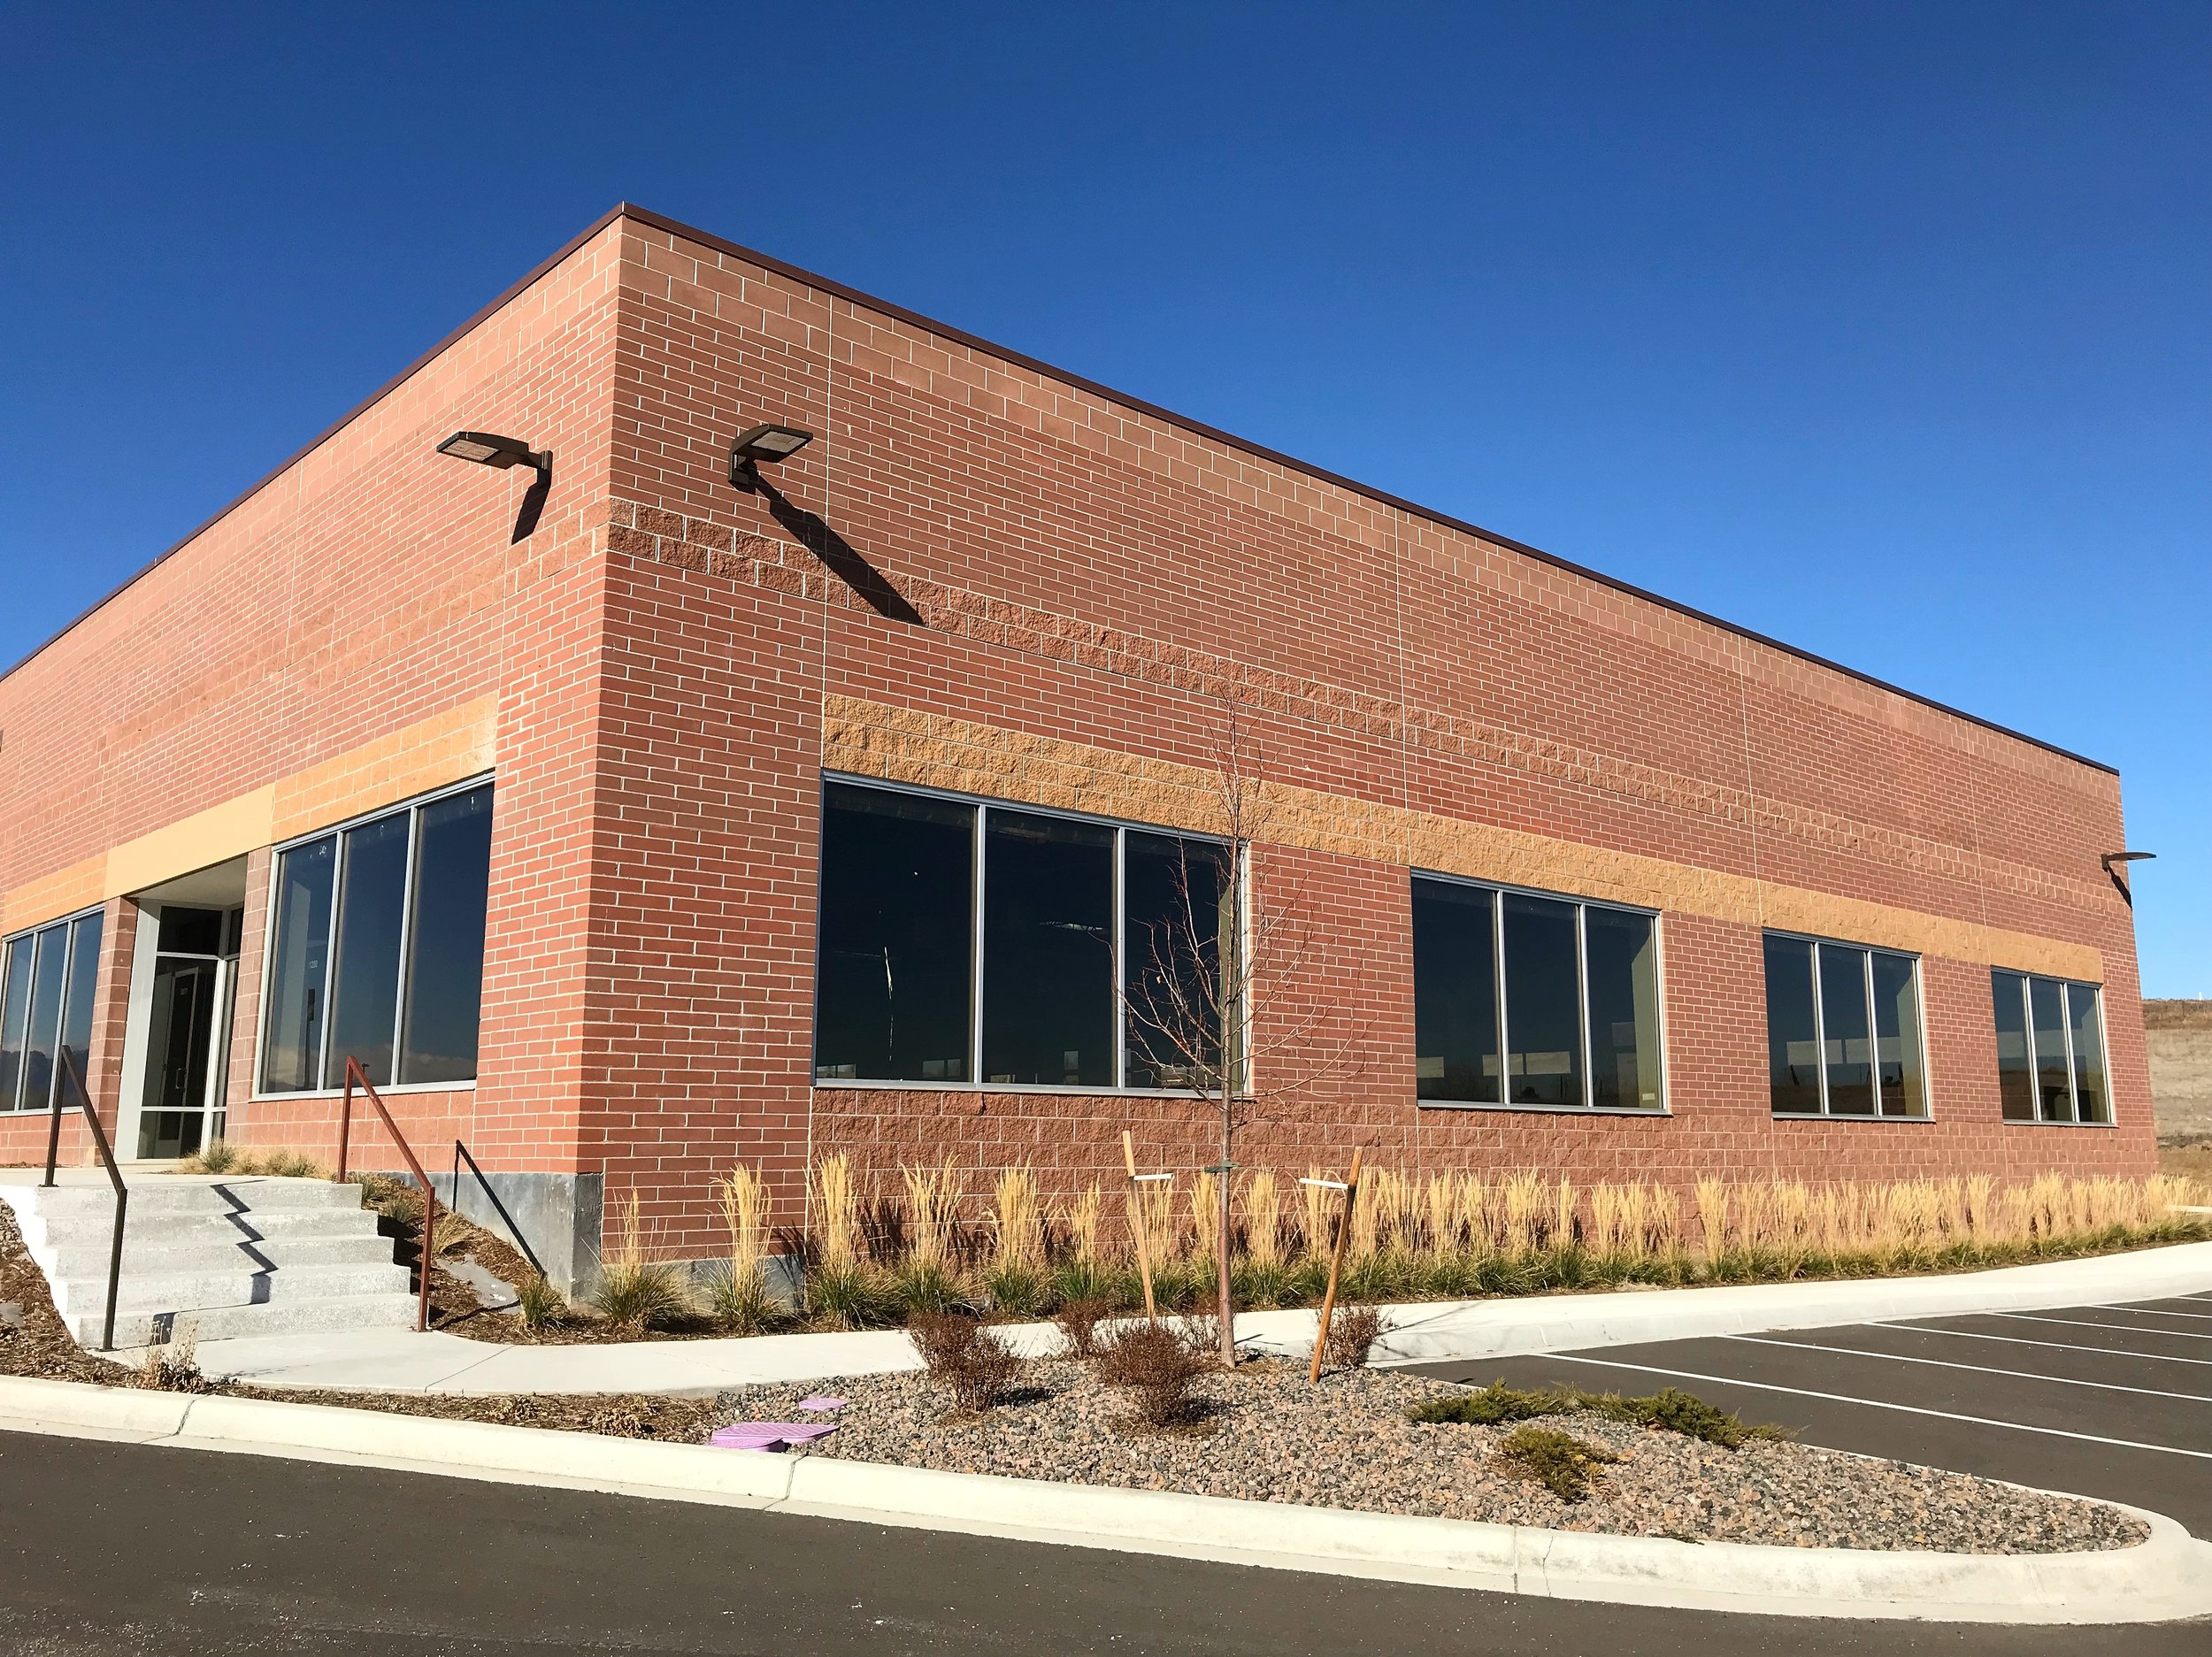 Westminster, Colorado - Our warehouse and offices are conveniently located in North Metro Denver at 11035 Dover Street, Unit 1200 Westminster, CO 80021. We have plans for an on-site Coffee Shop and Tasting Room in Summer of 2019.